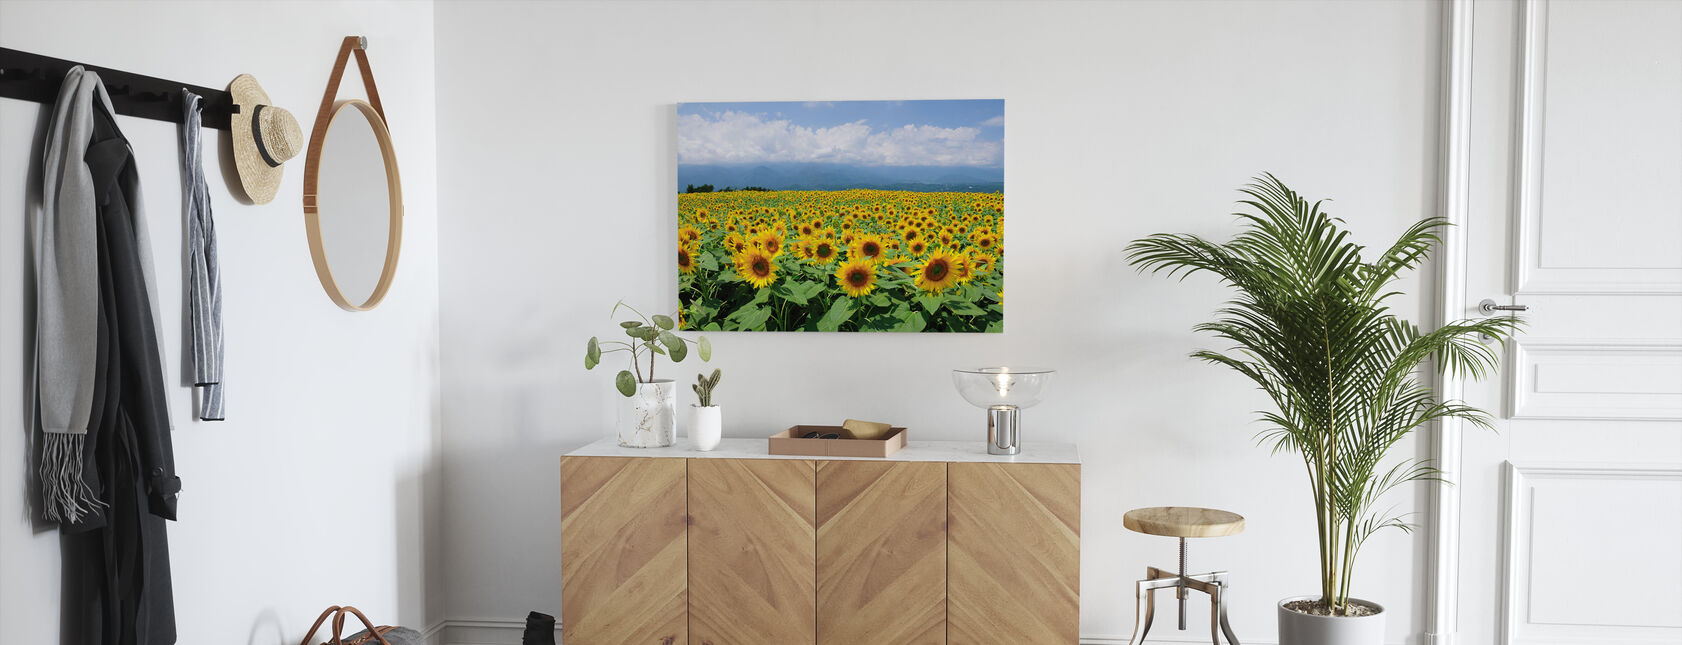 Sunflowers in Sunny Weather - Canvas print - Hallway